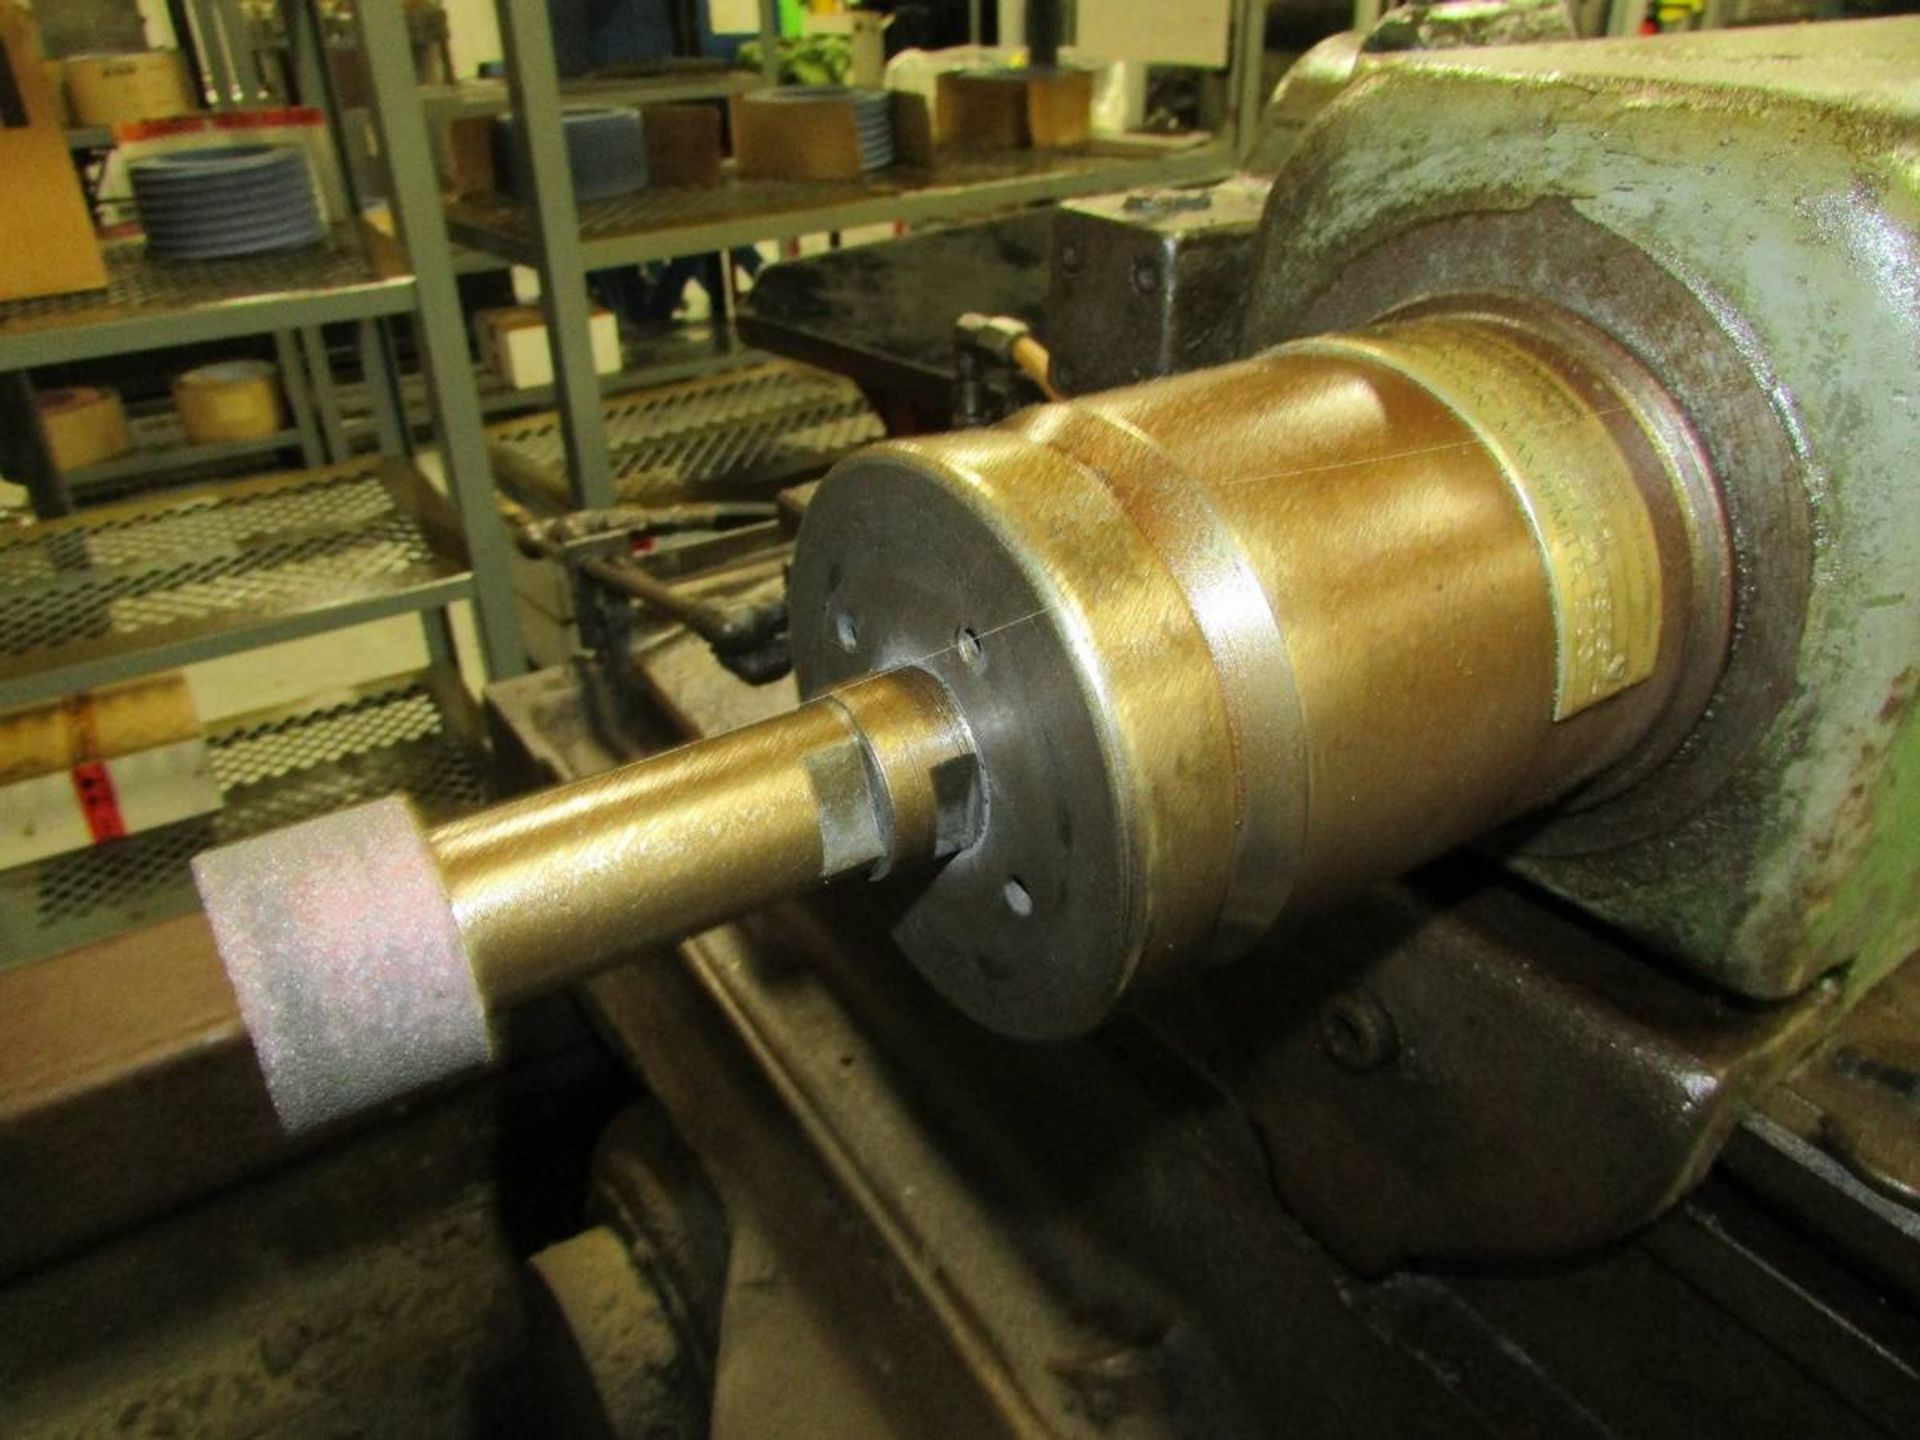 1981 Bryant 1116 ID Cylindrical Grinder - Image 10 of 20